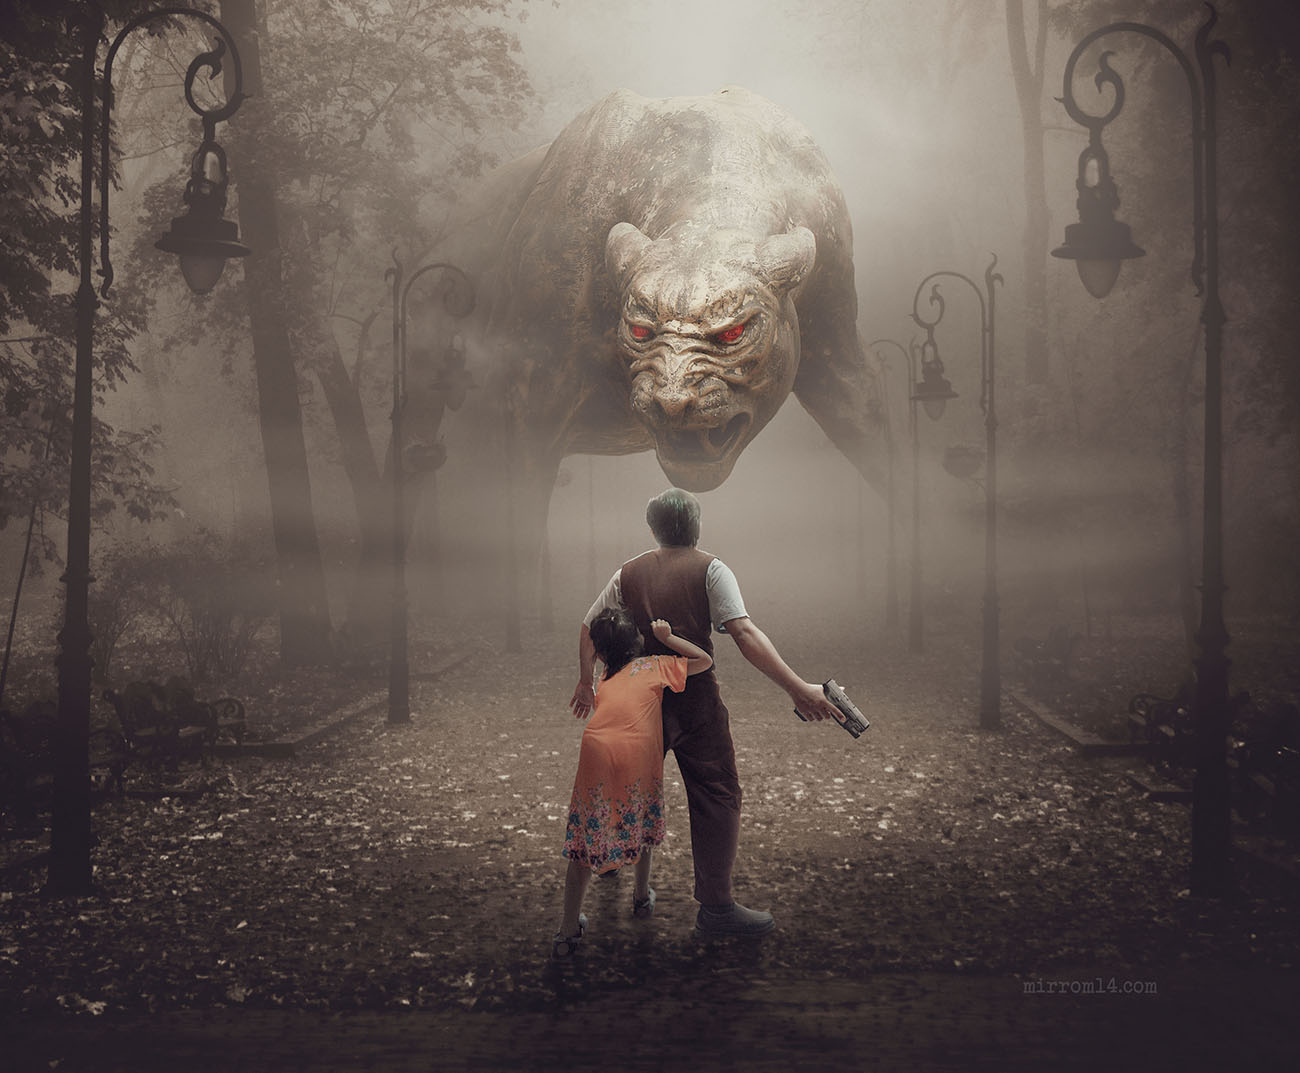 Create a Big Cat Demon Photo Manipulation With Vintage Color in Photoshop